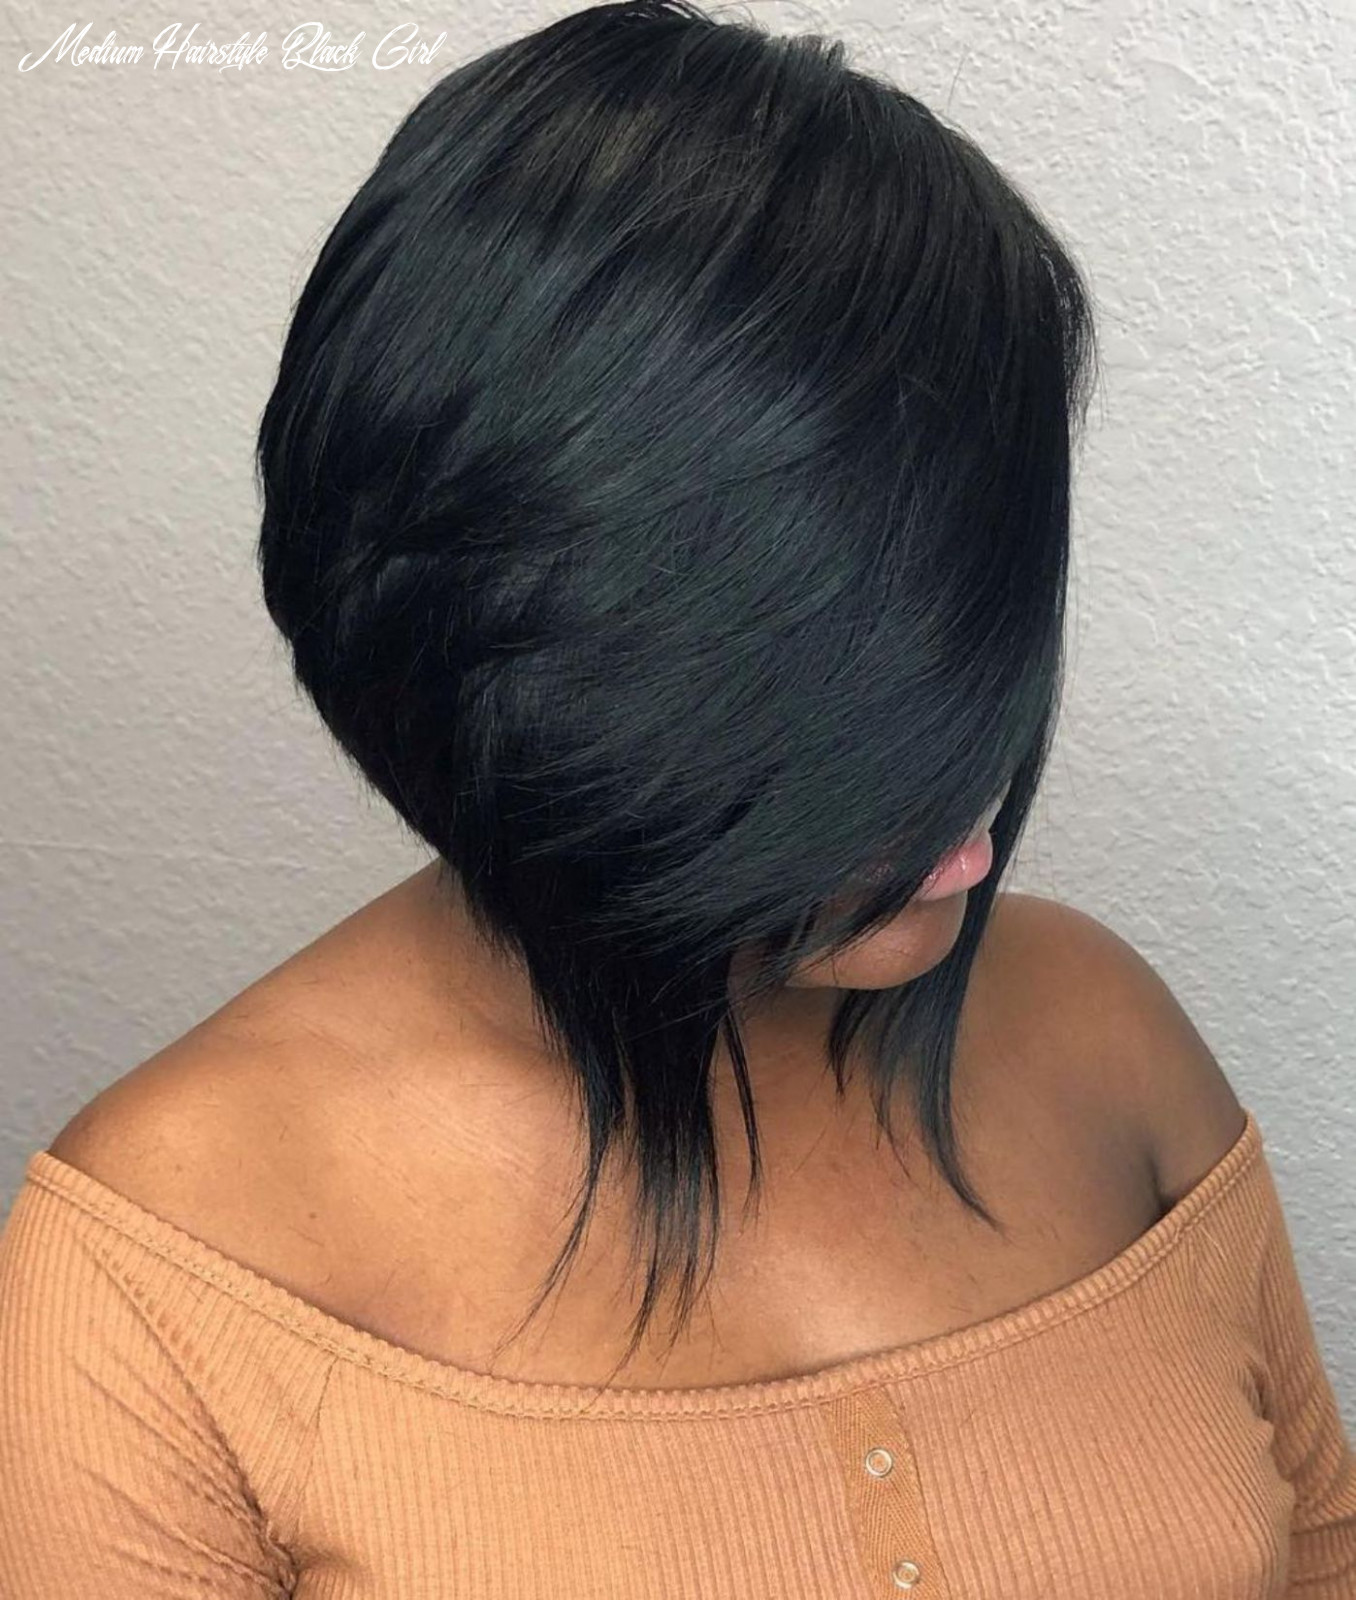 12 showiest bob haircuts for black women | hairstyles for thin